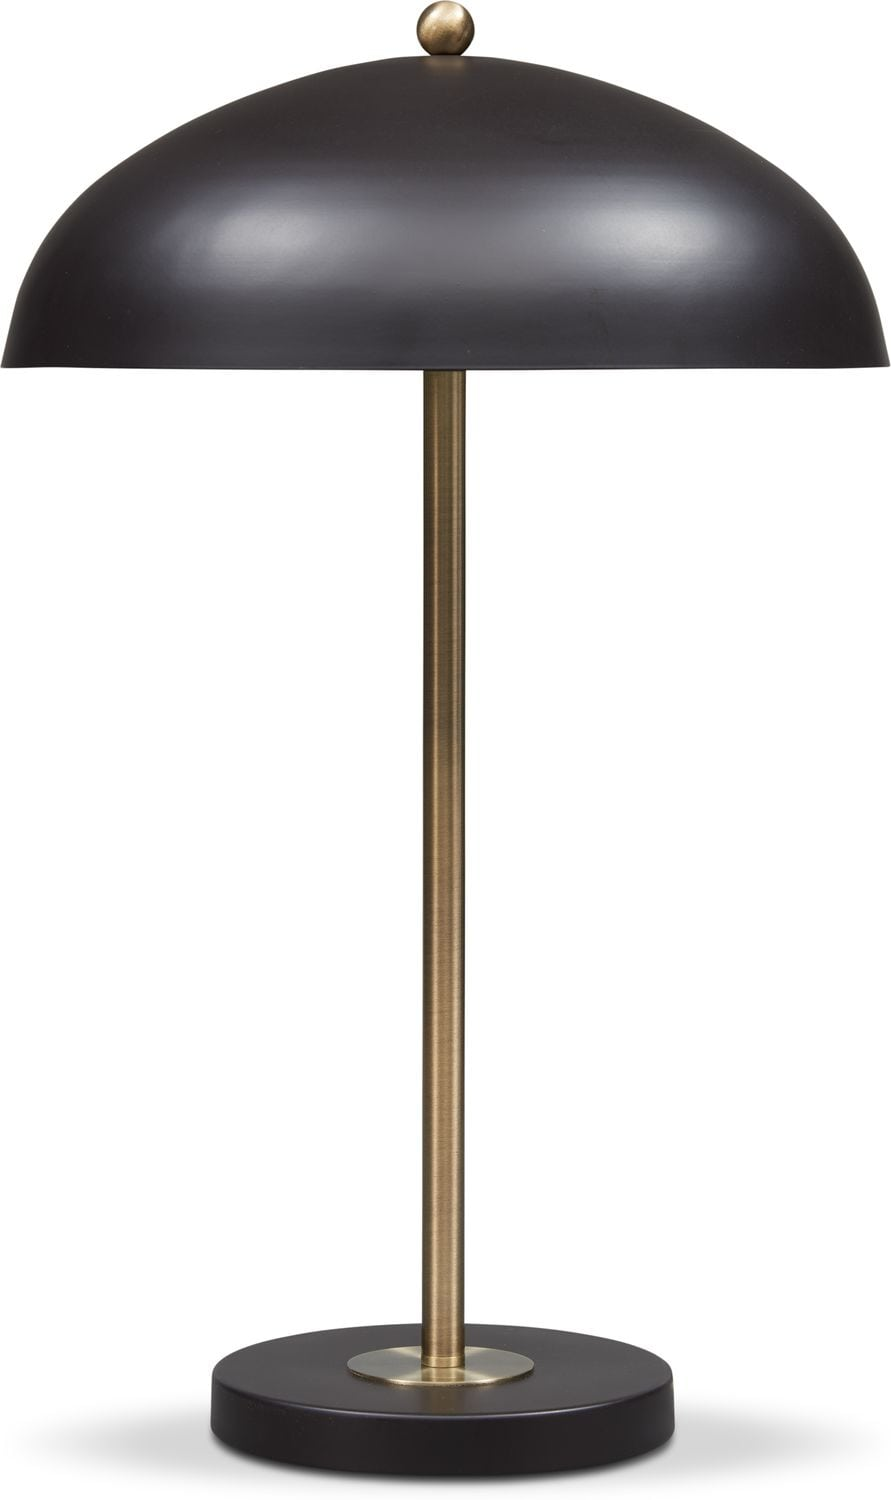 Home Accessories - Black and Gold Table Lamp